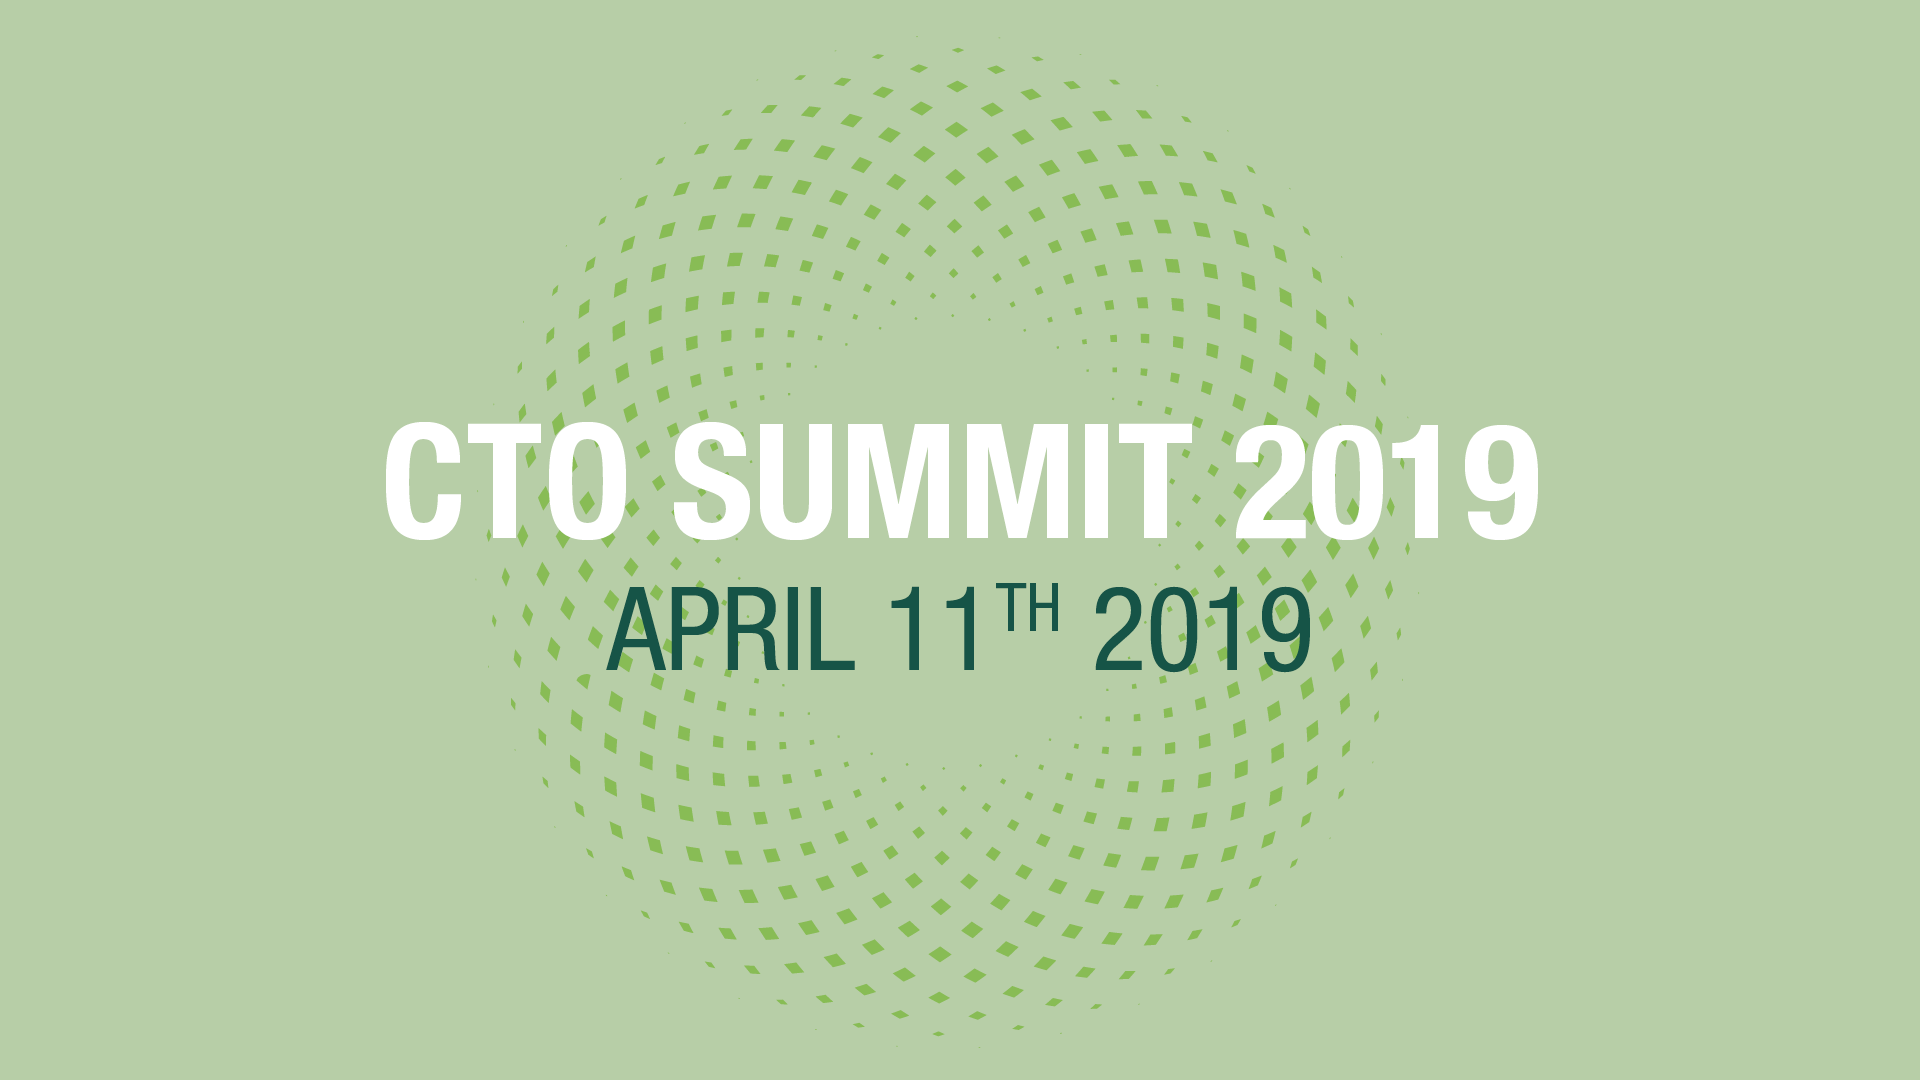 CTO SUMMIT 2019: Thursday, April 11th Afternoon